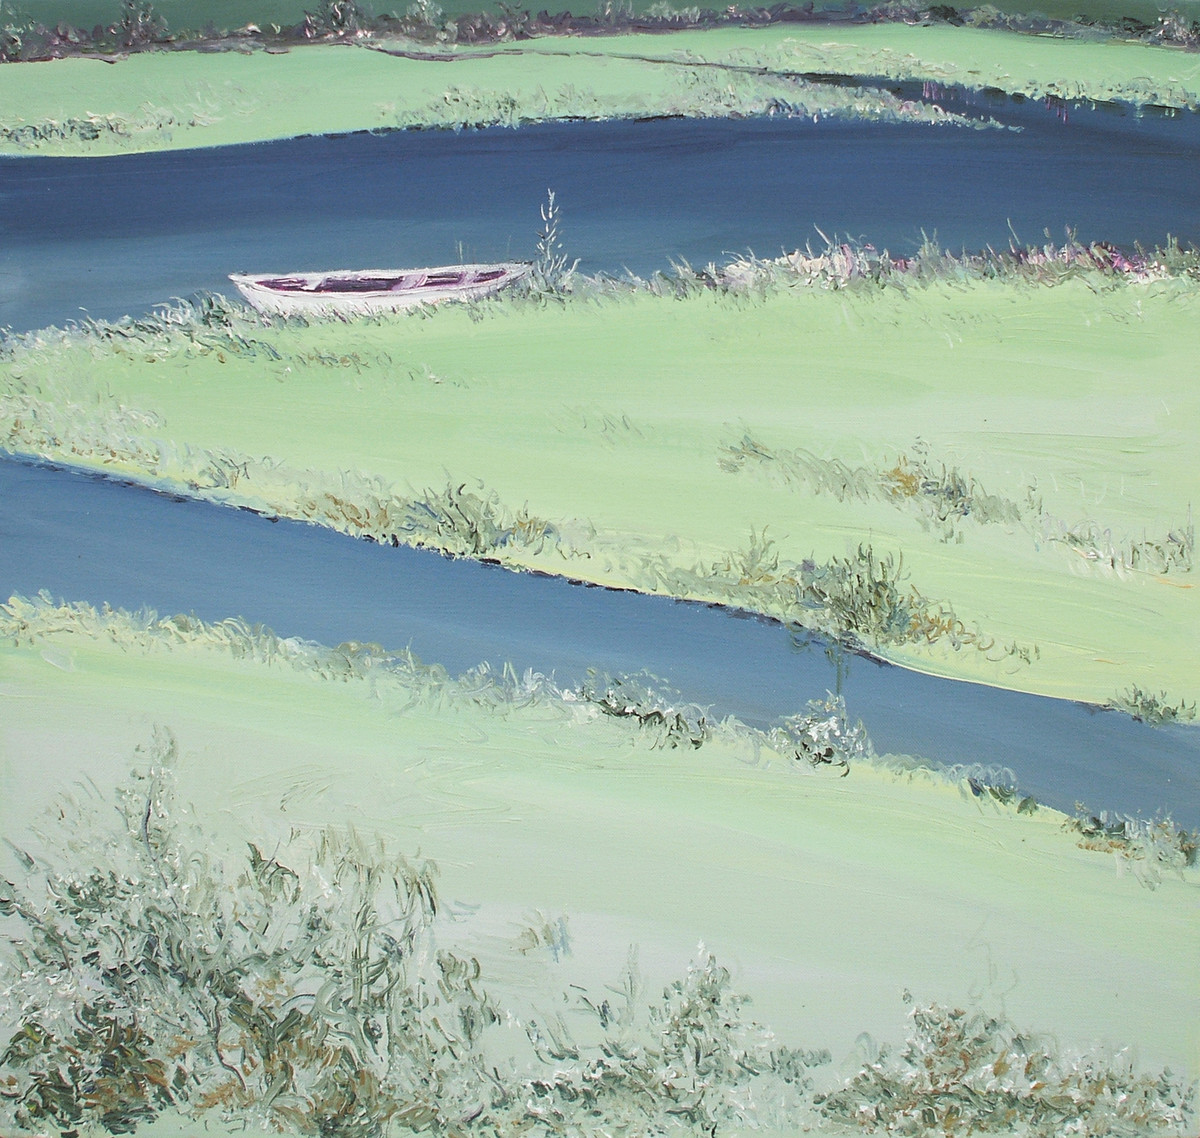 River Banks and A Boat - Oil paining by Animesh Roy